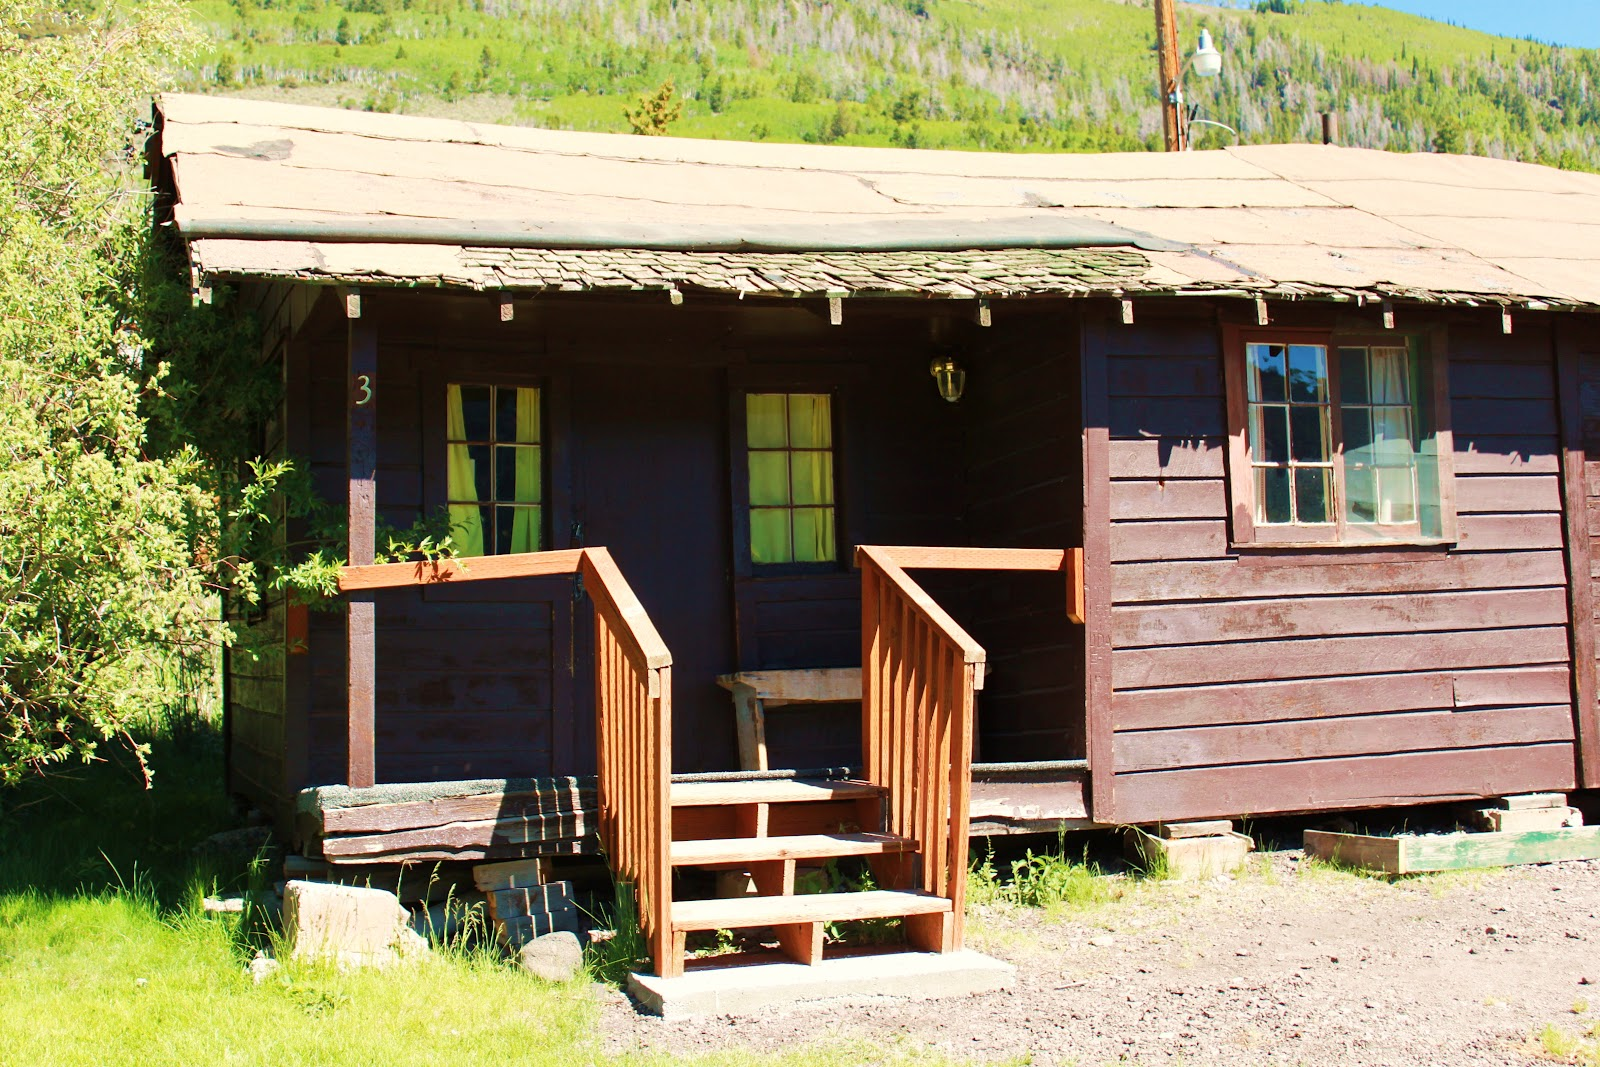 Rental cabins at fish lake utah rustic 6 person camping for Rustic lodge